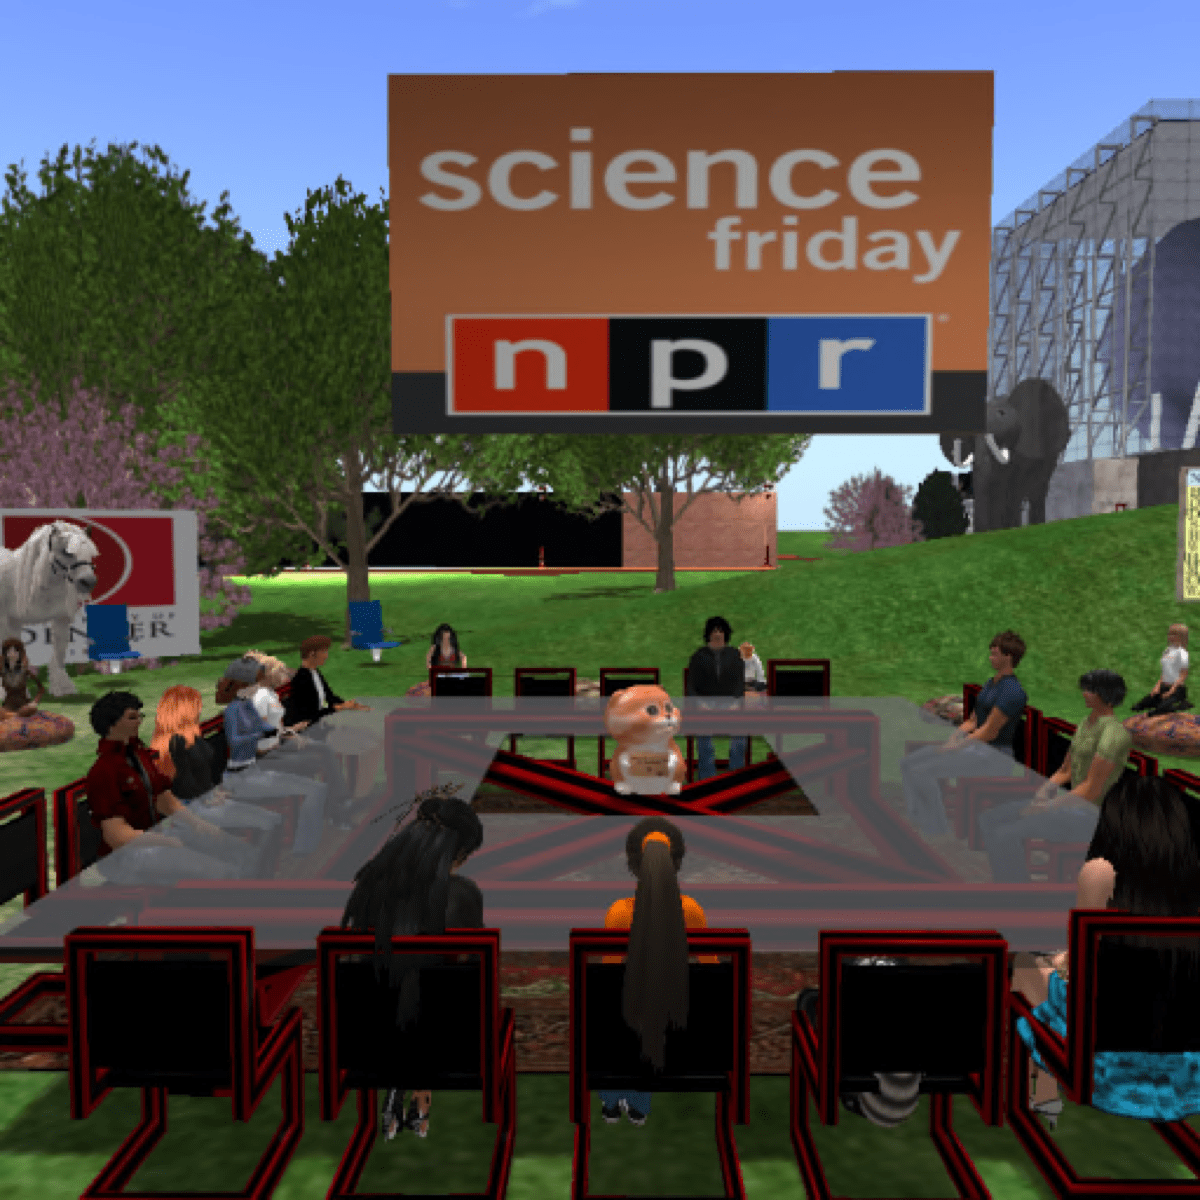 a virtual world of avatars sitting around a square glass table. in the middle of the table is a small dog. above them is a sign that reads science friday npr